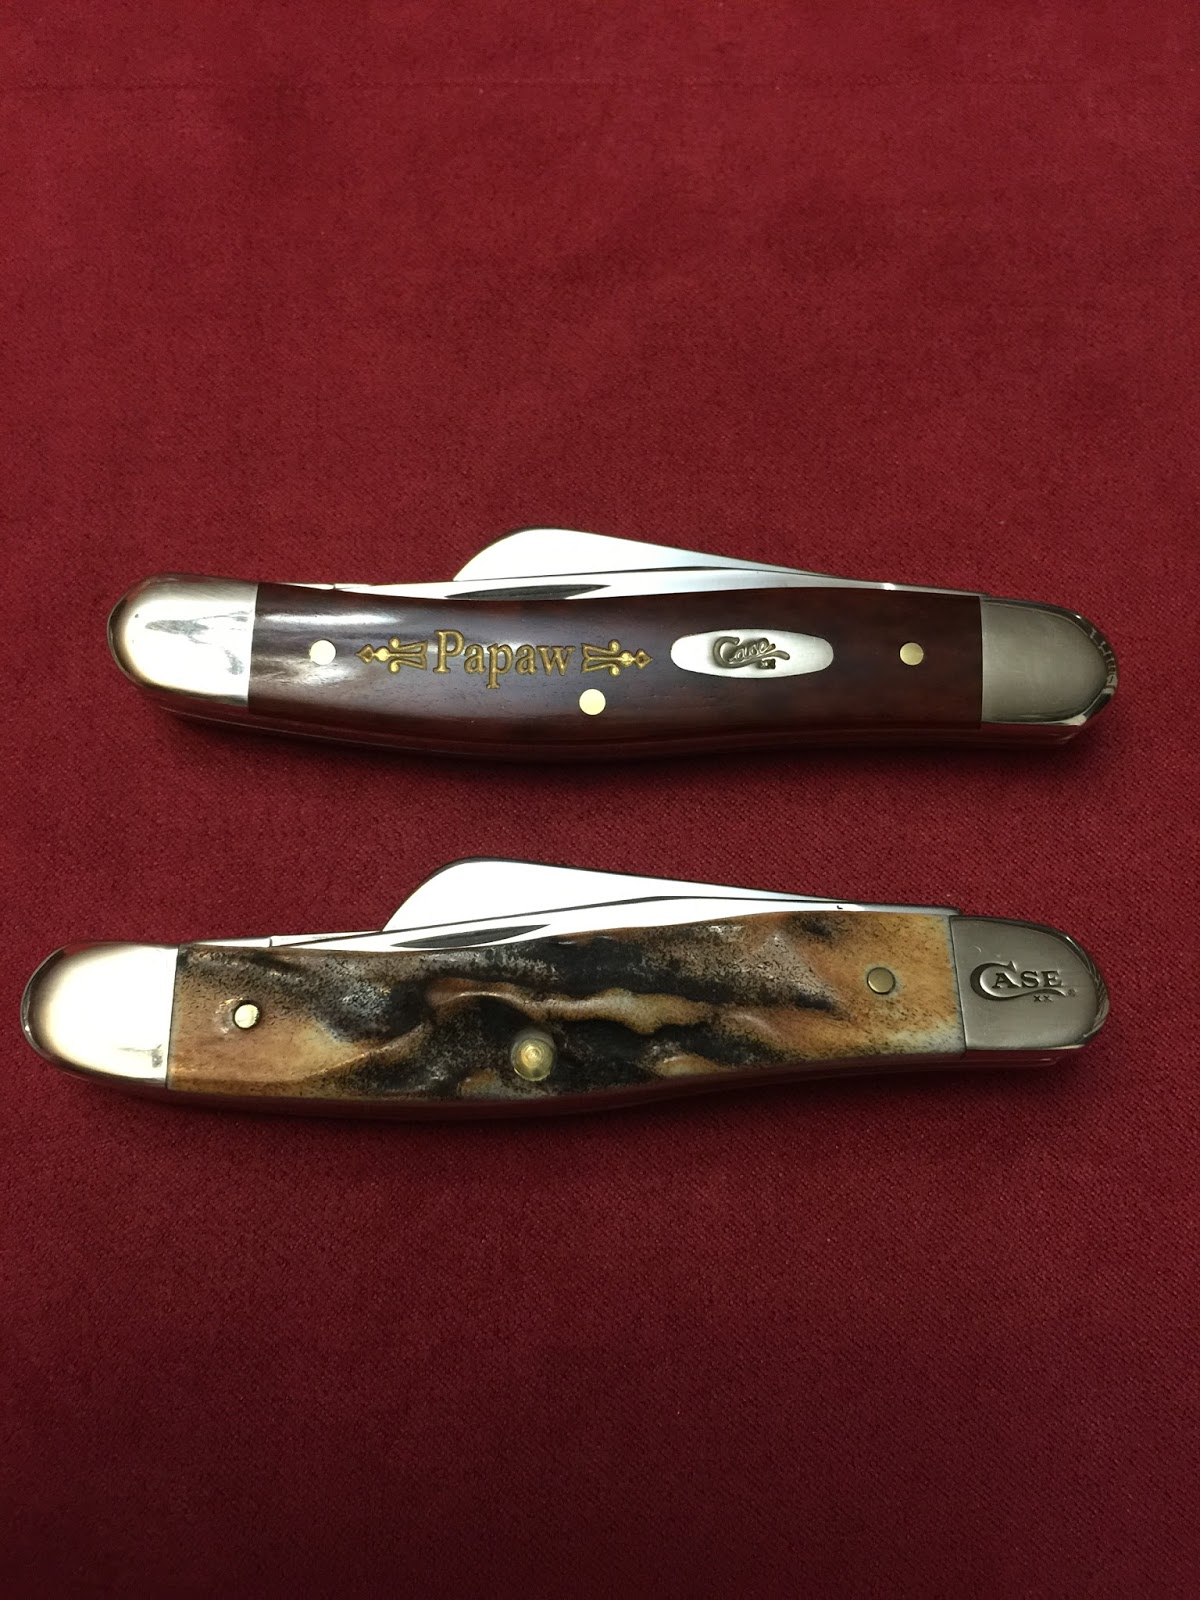 """""""A knifeless man is a lifeless man"""" – Nordic proverb. Steven M. Watts, Most campers and woodsmen in the first quarter of the the twentieth century carried both pocket knives and sheath knives — a wise continuation of frontier practices from a century or more before."""